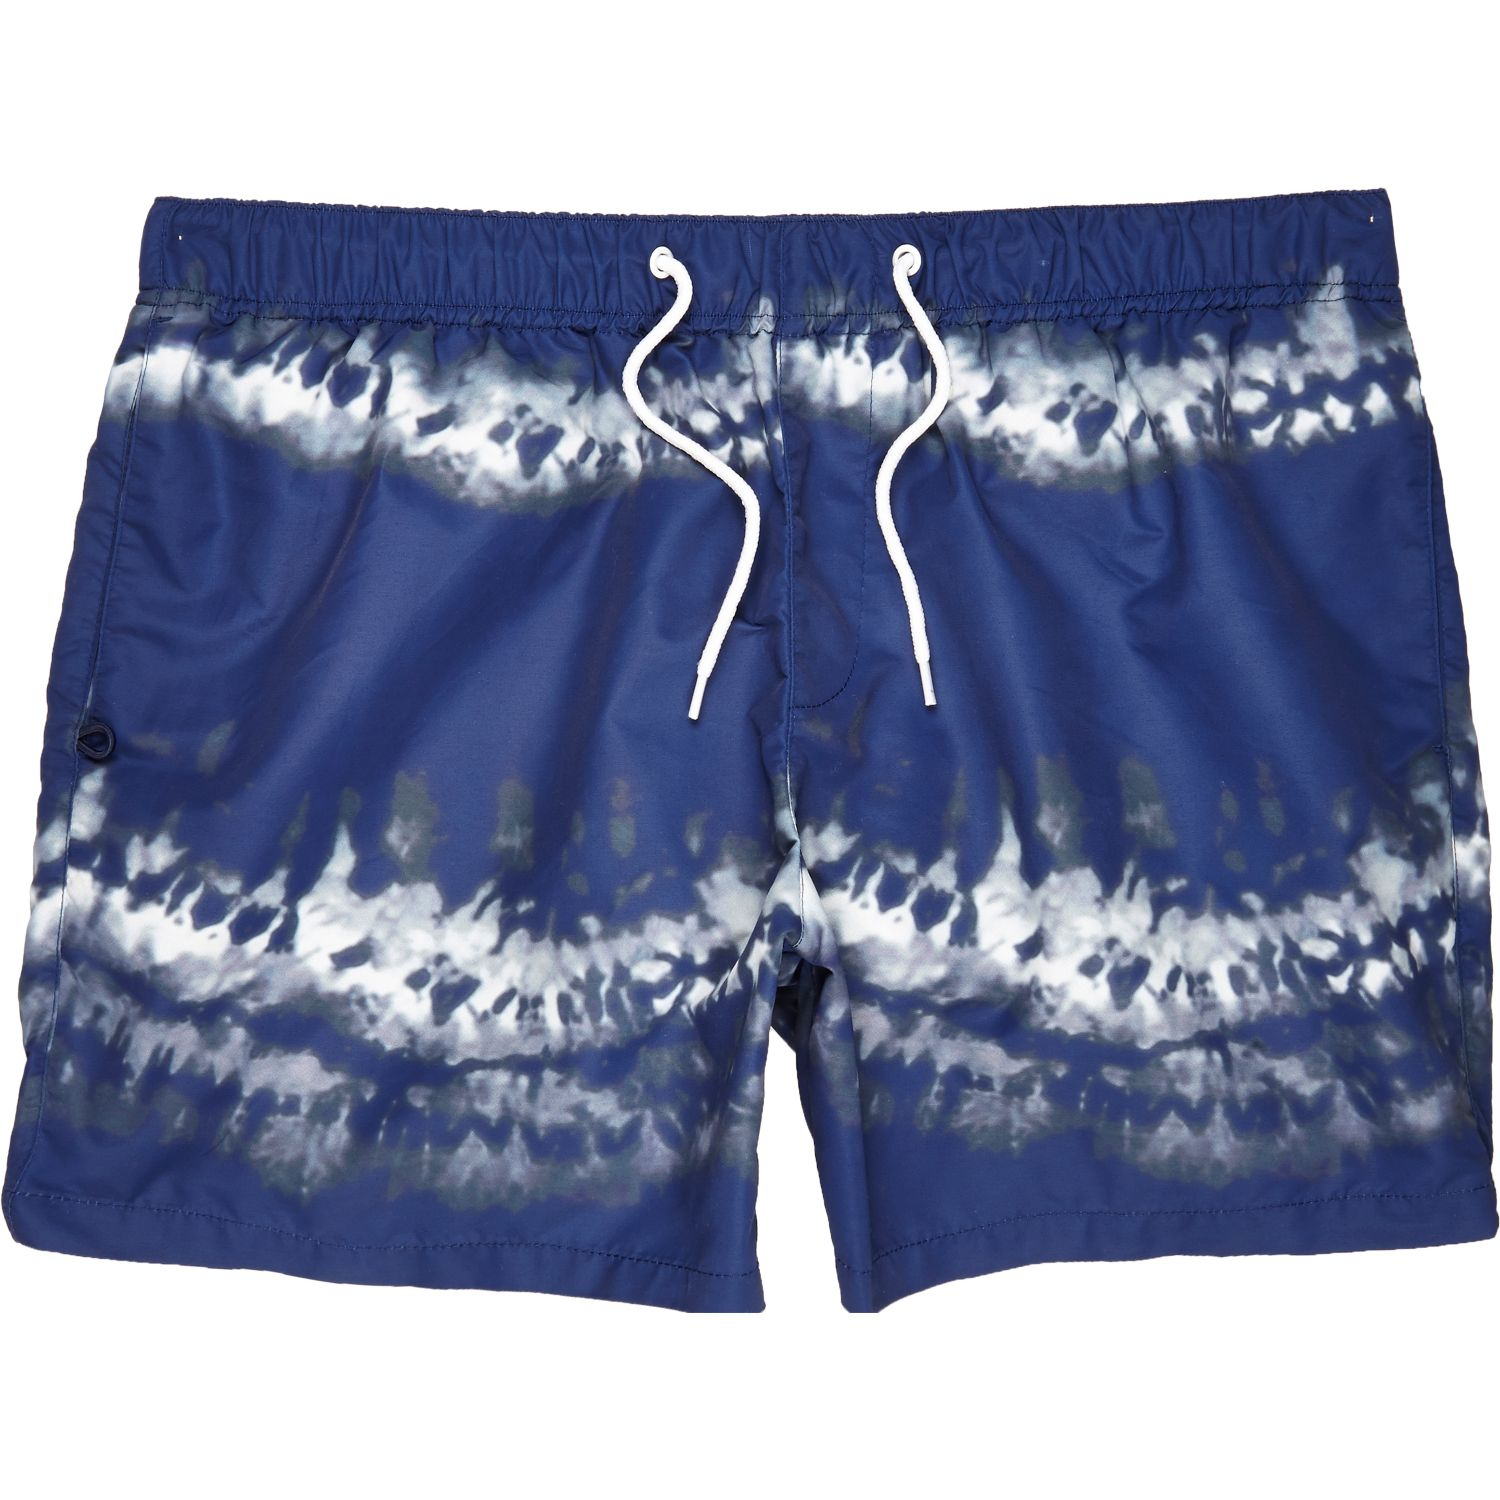 Lyst river island navy tie dye swim shorts in blue for men for Nike tie dye shirt and shorts